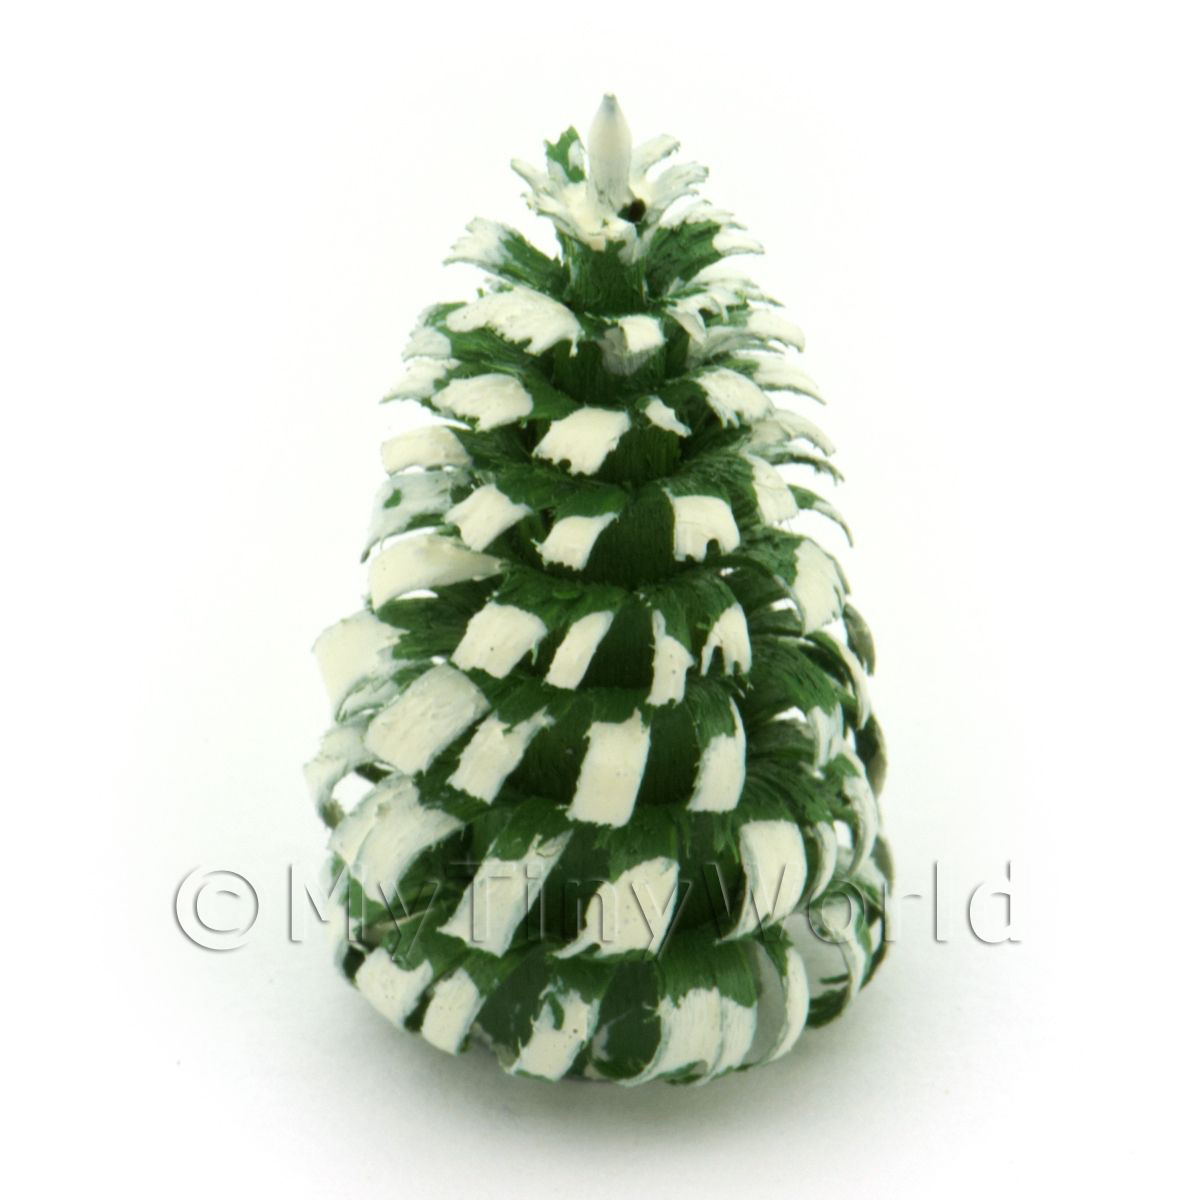 Dolls House Miniature 30mm Snow Tree